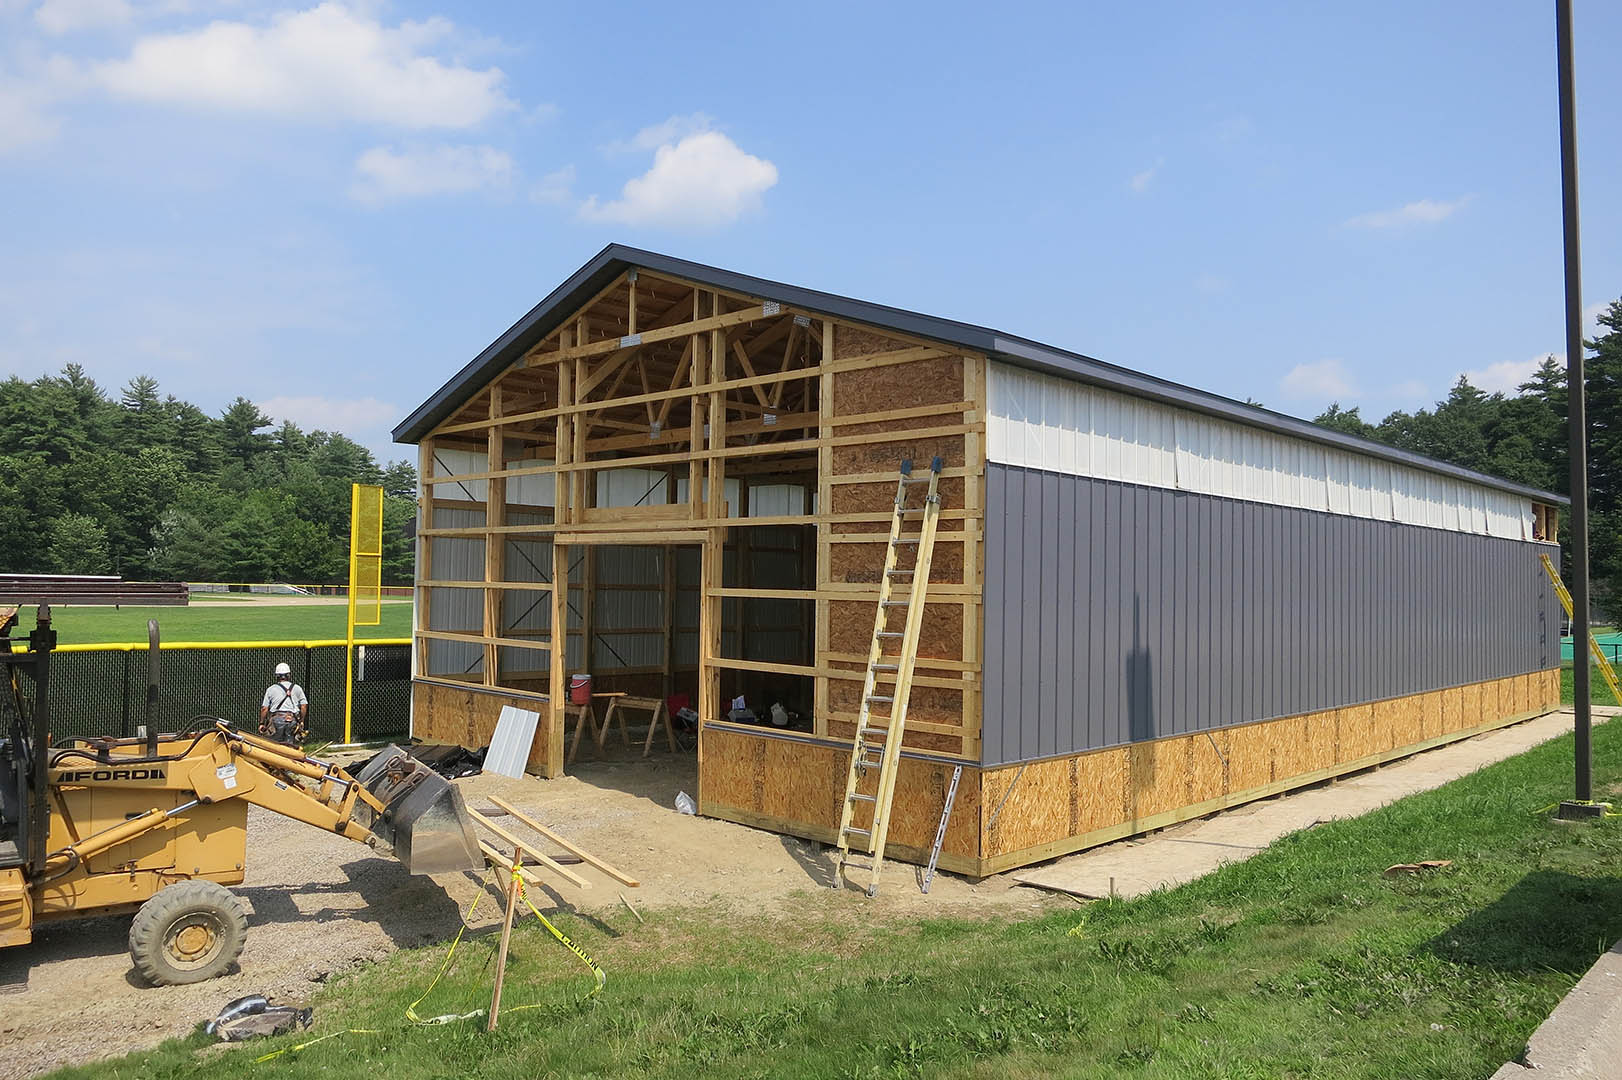 The new batting facility under construction on July 23, 2014. (Doug Hubley/Bates College)